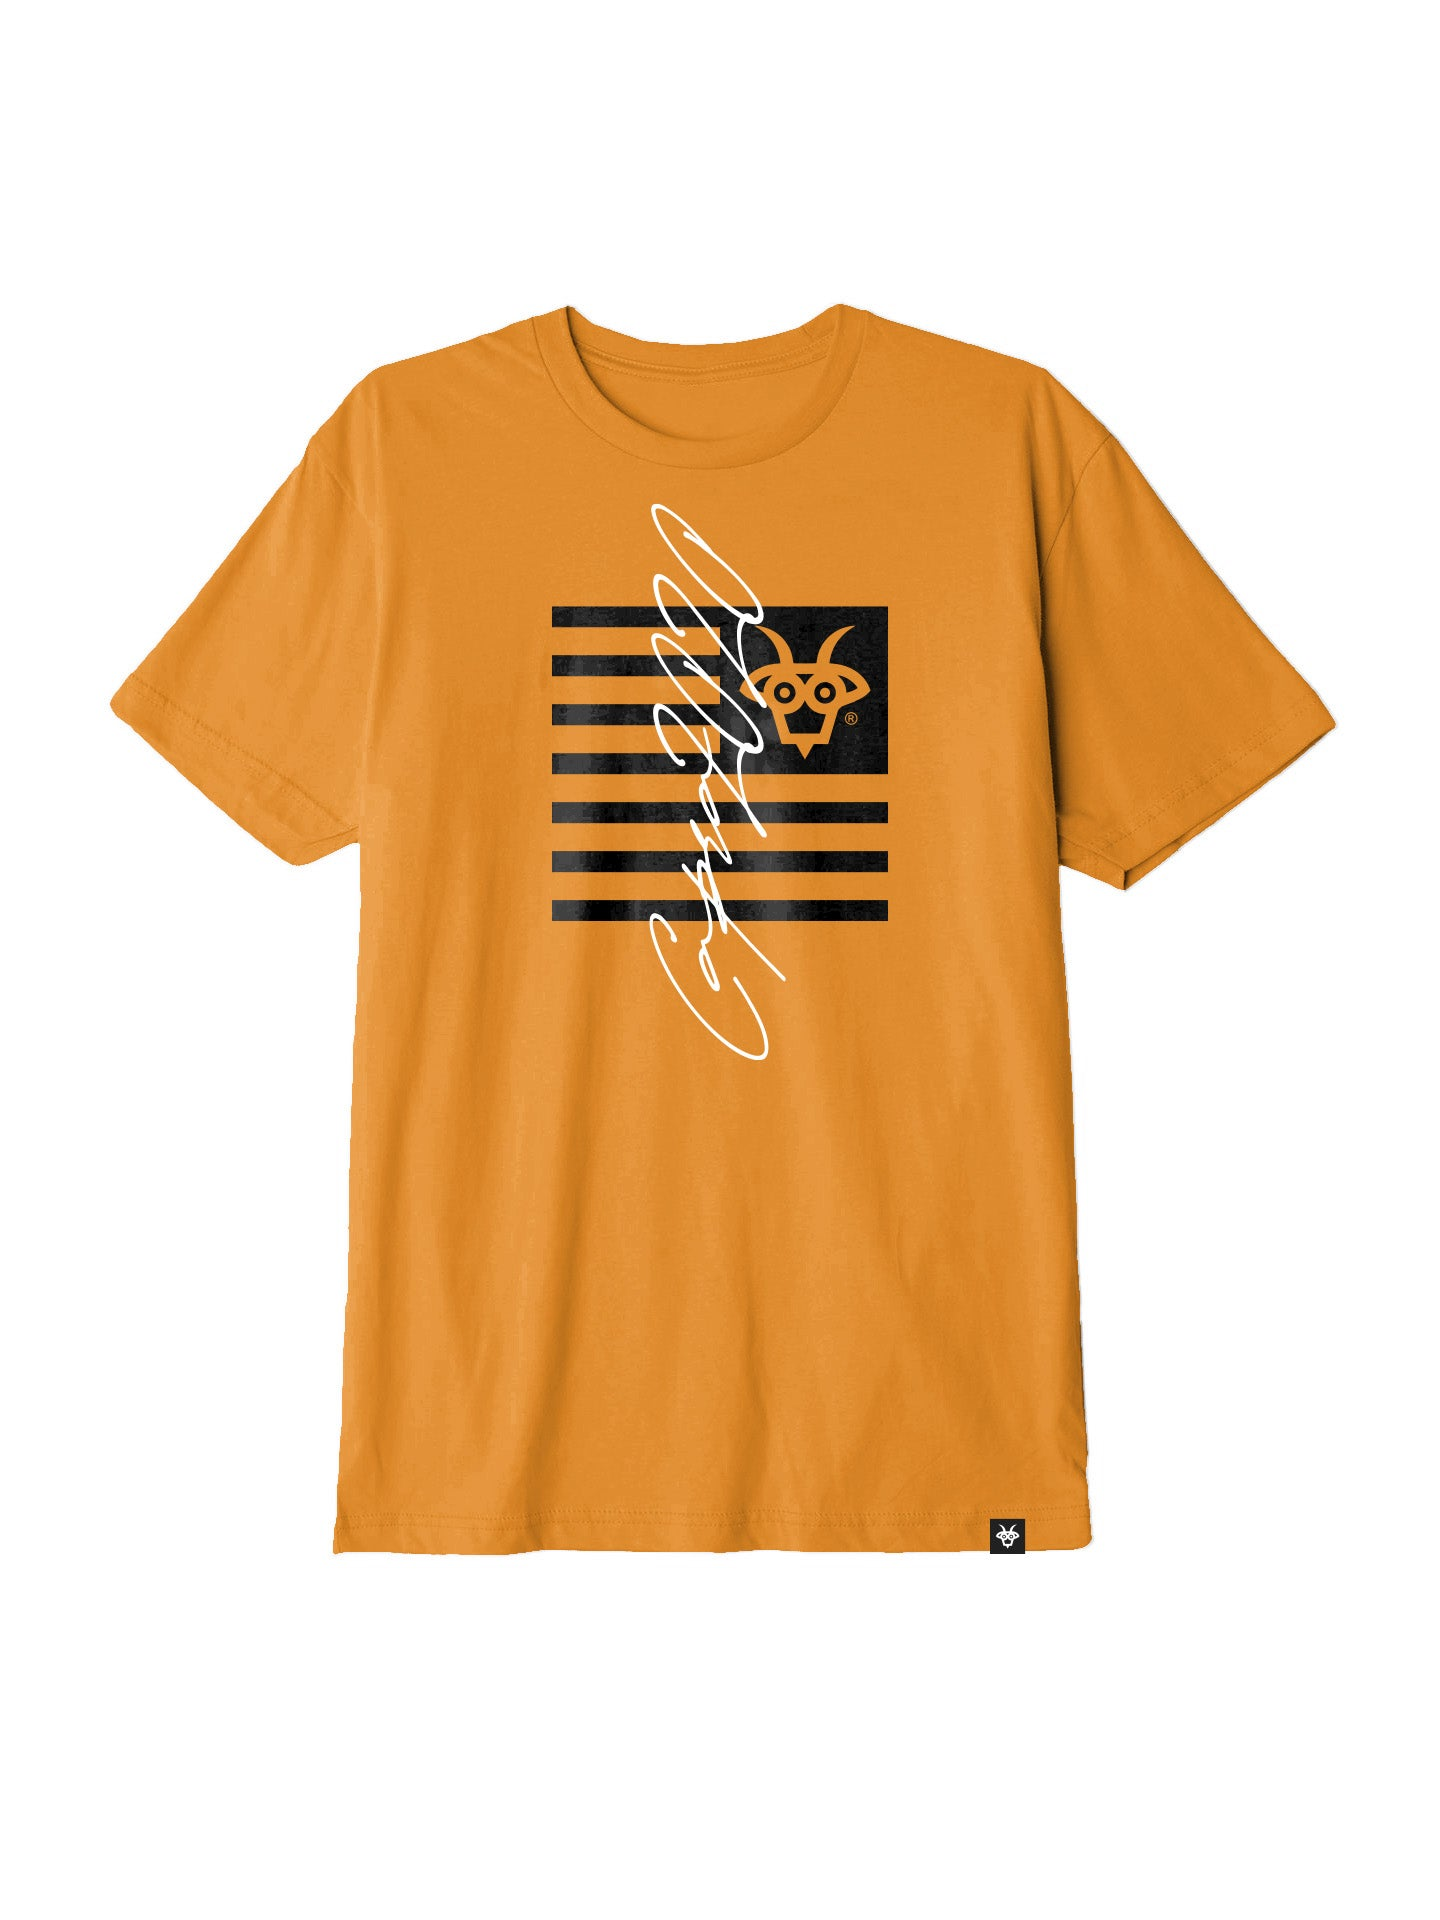 Capra Flagship Tee - Orange/Black